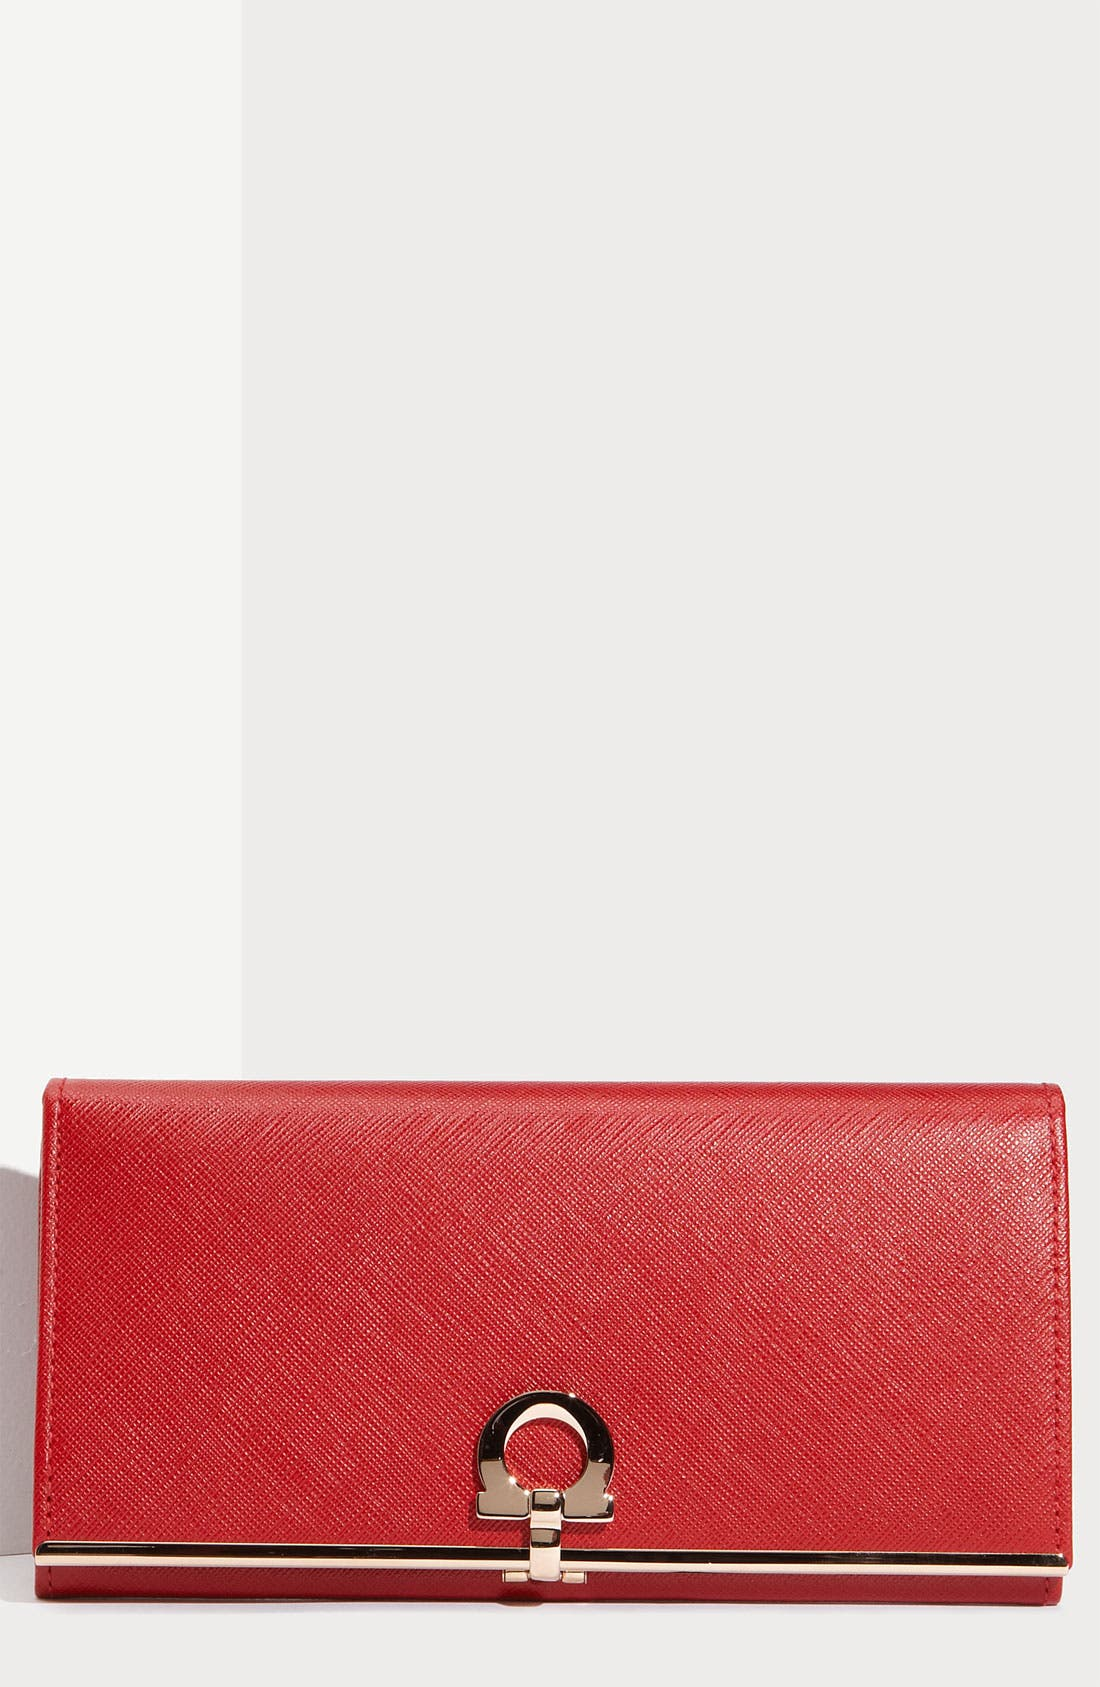 Main Image - Salvatore Ferragamo 'Gancini Icona' Saffiano Leather Wallet